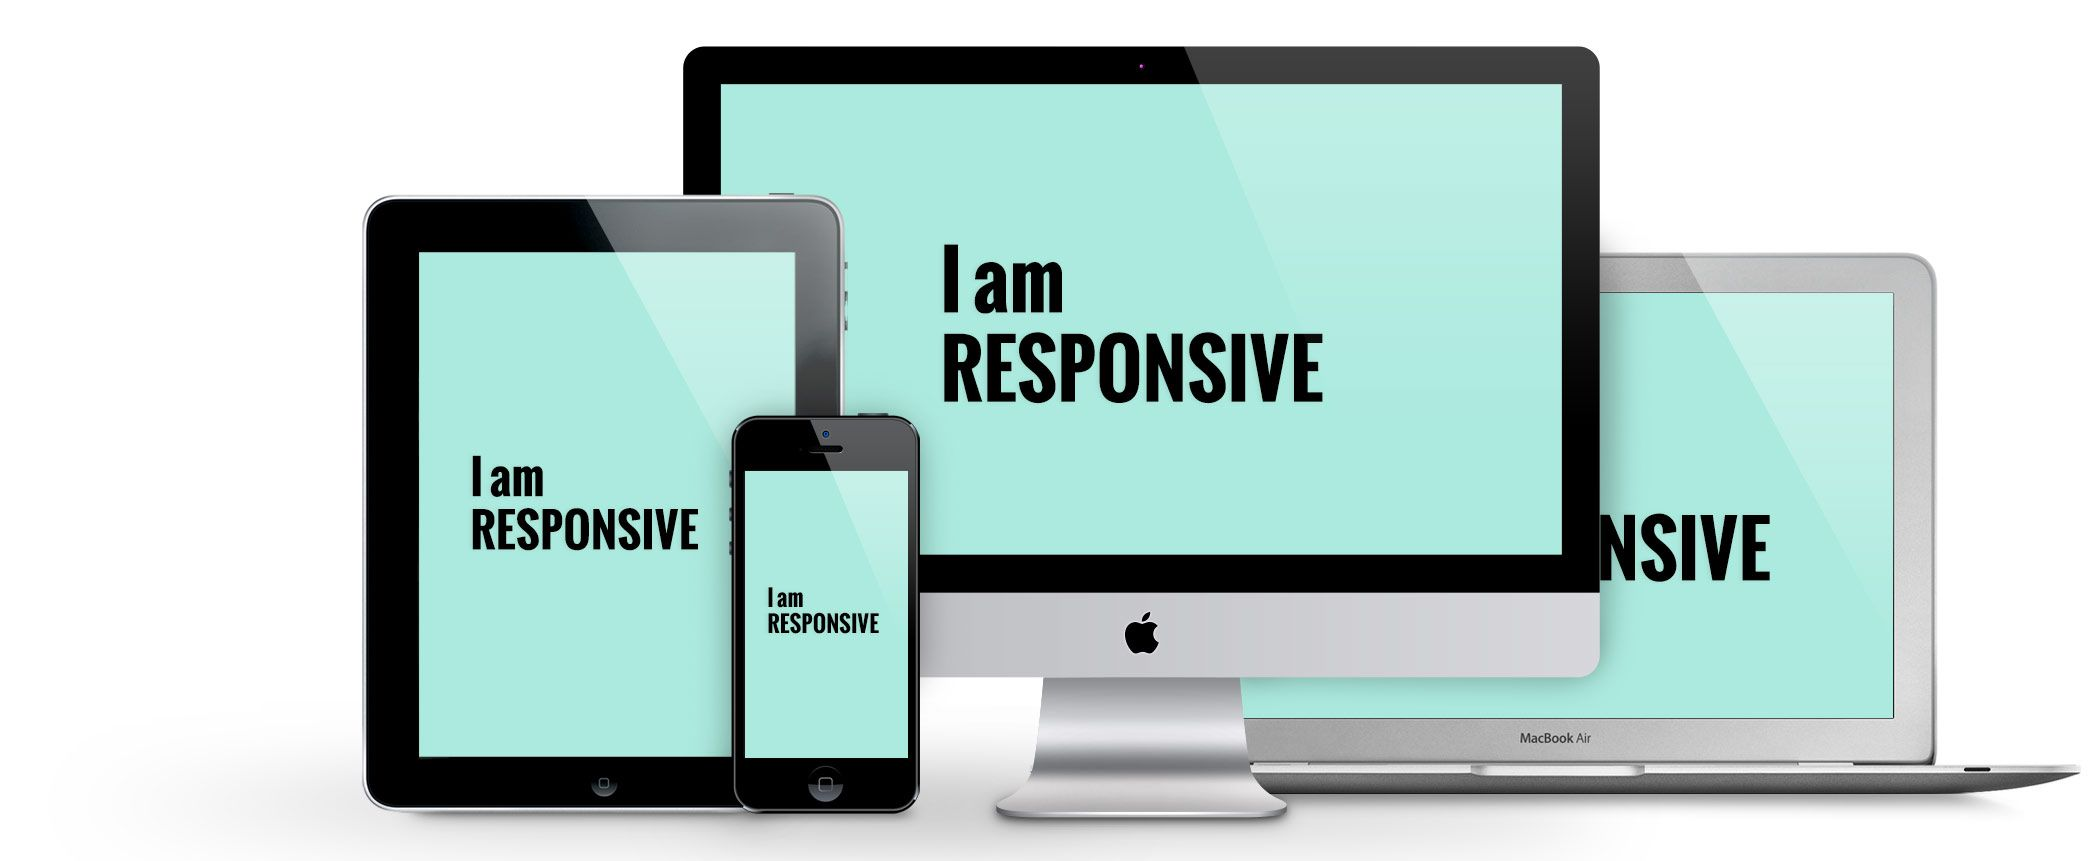 8 Essential Benefits of A Responsive Web Design